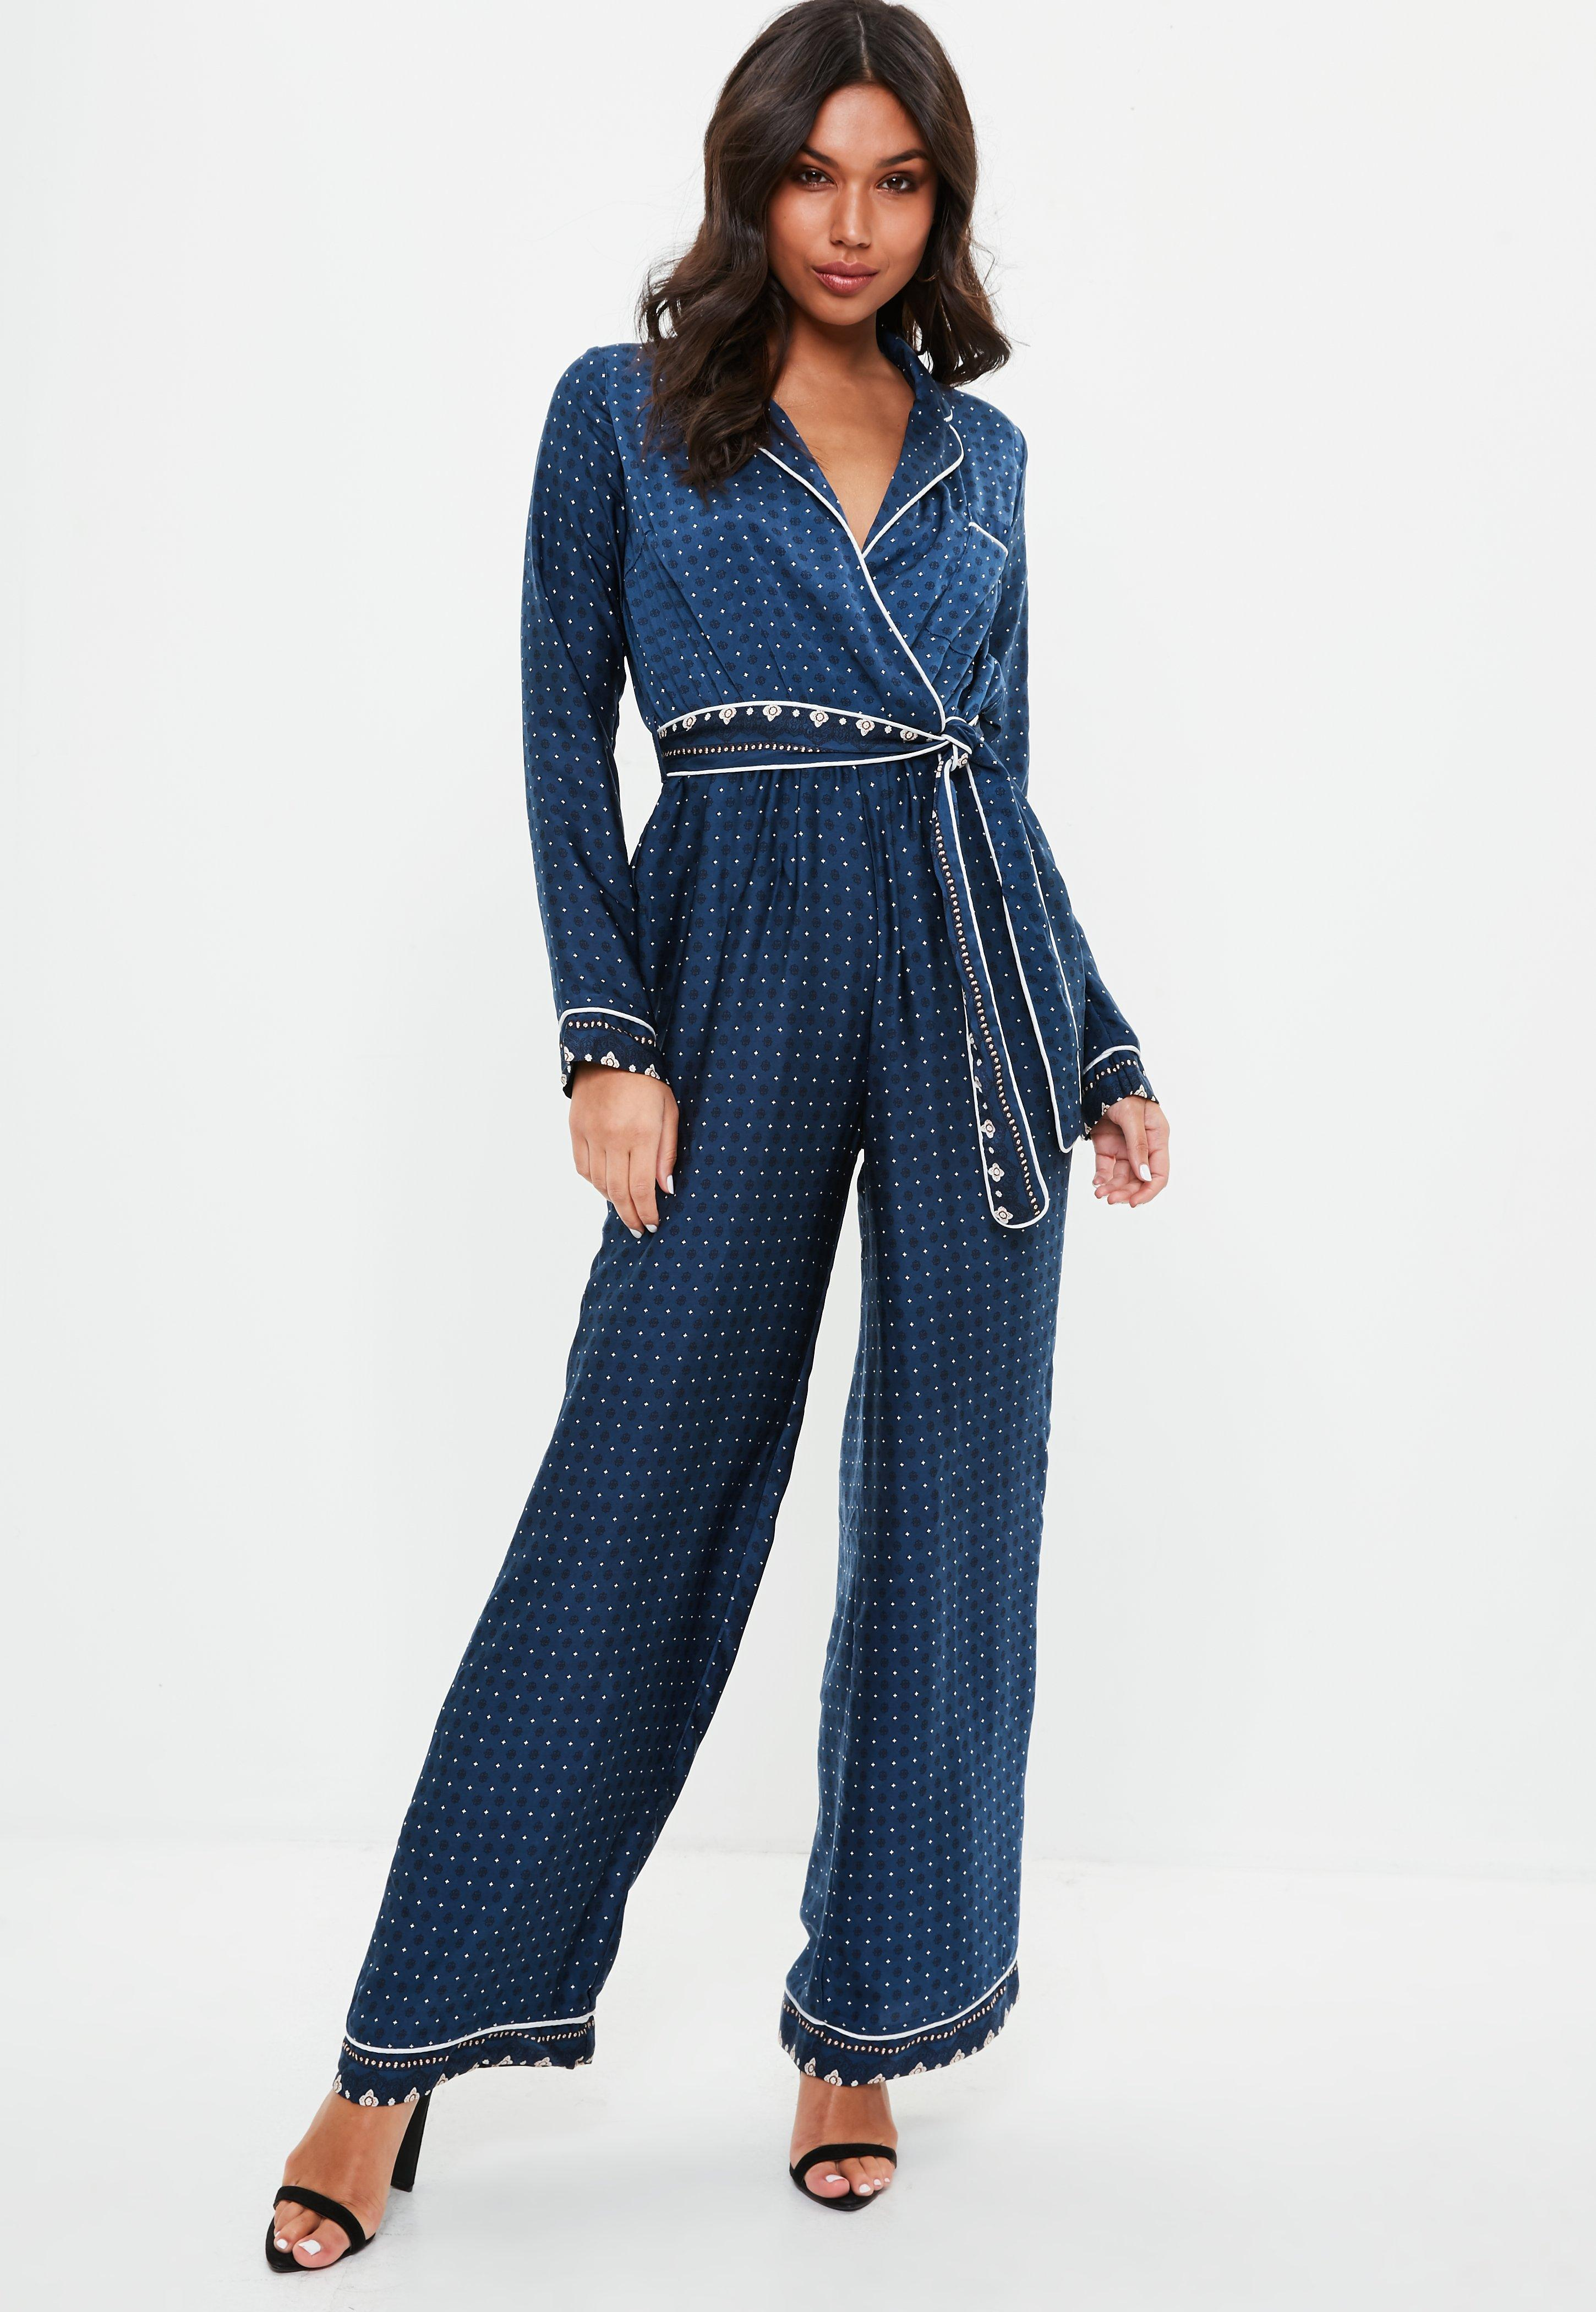 51b258221dc Missguided Navy Contrast Print Pajamas Jumpsuit in Blue - Lyst